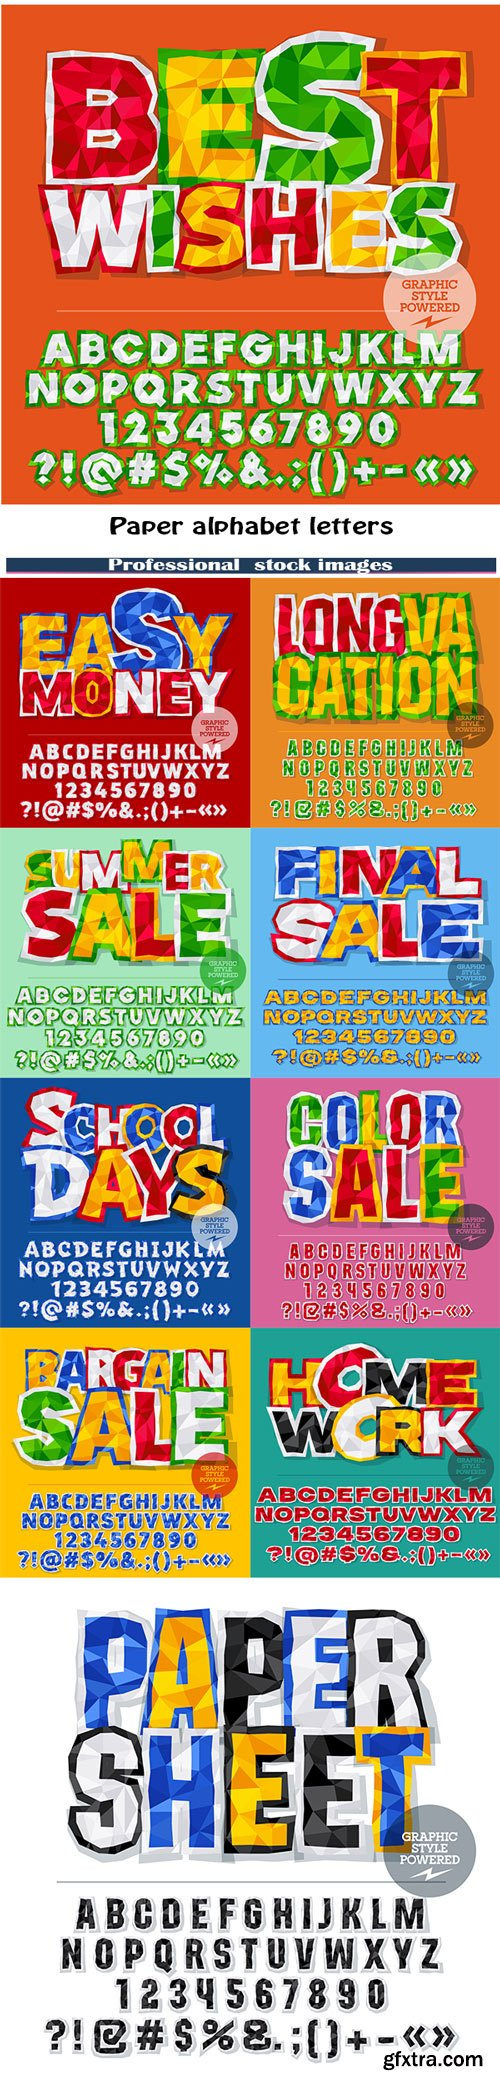 Vector colorful crumpled paper alphabet letters, numbers and punctuation symbols